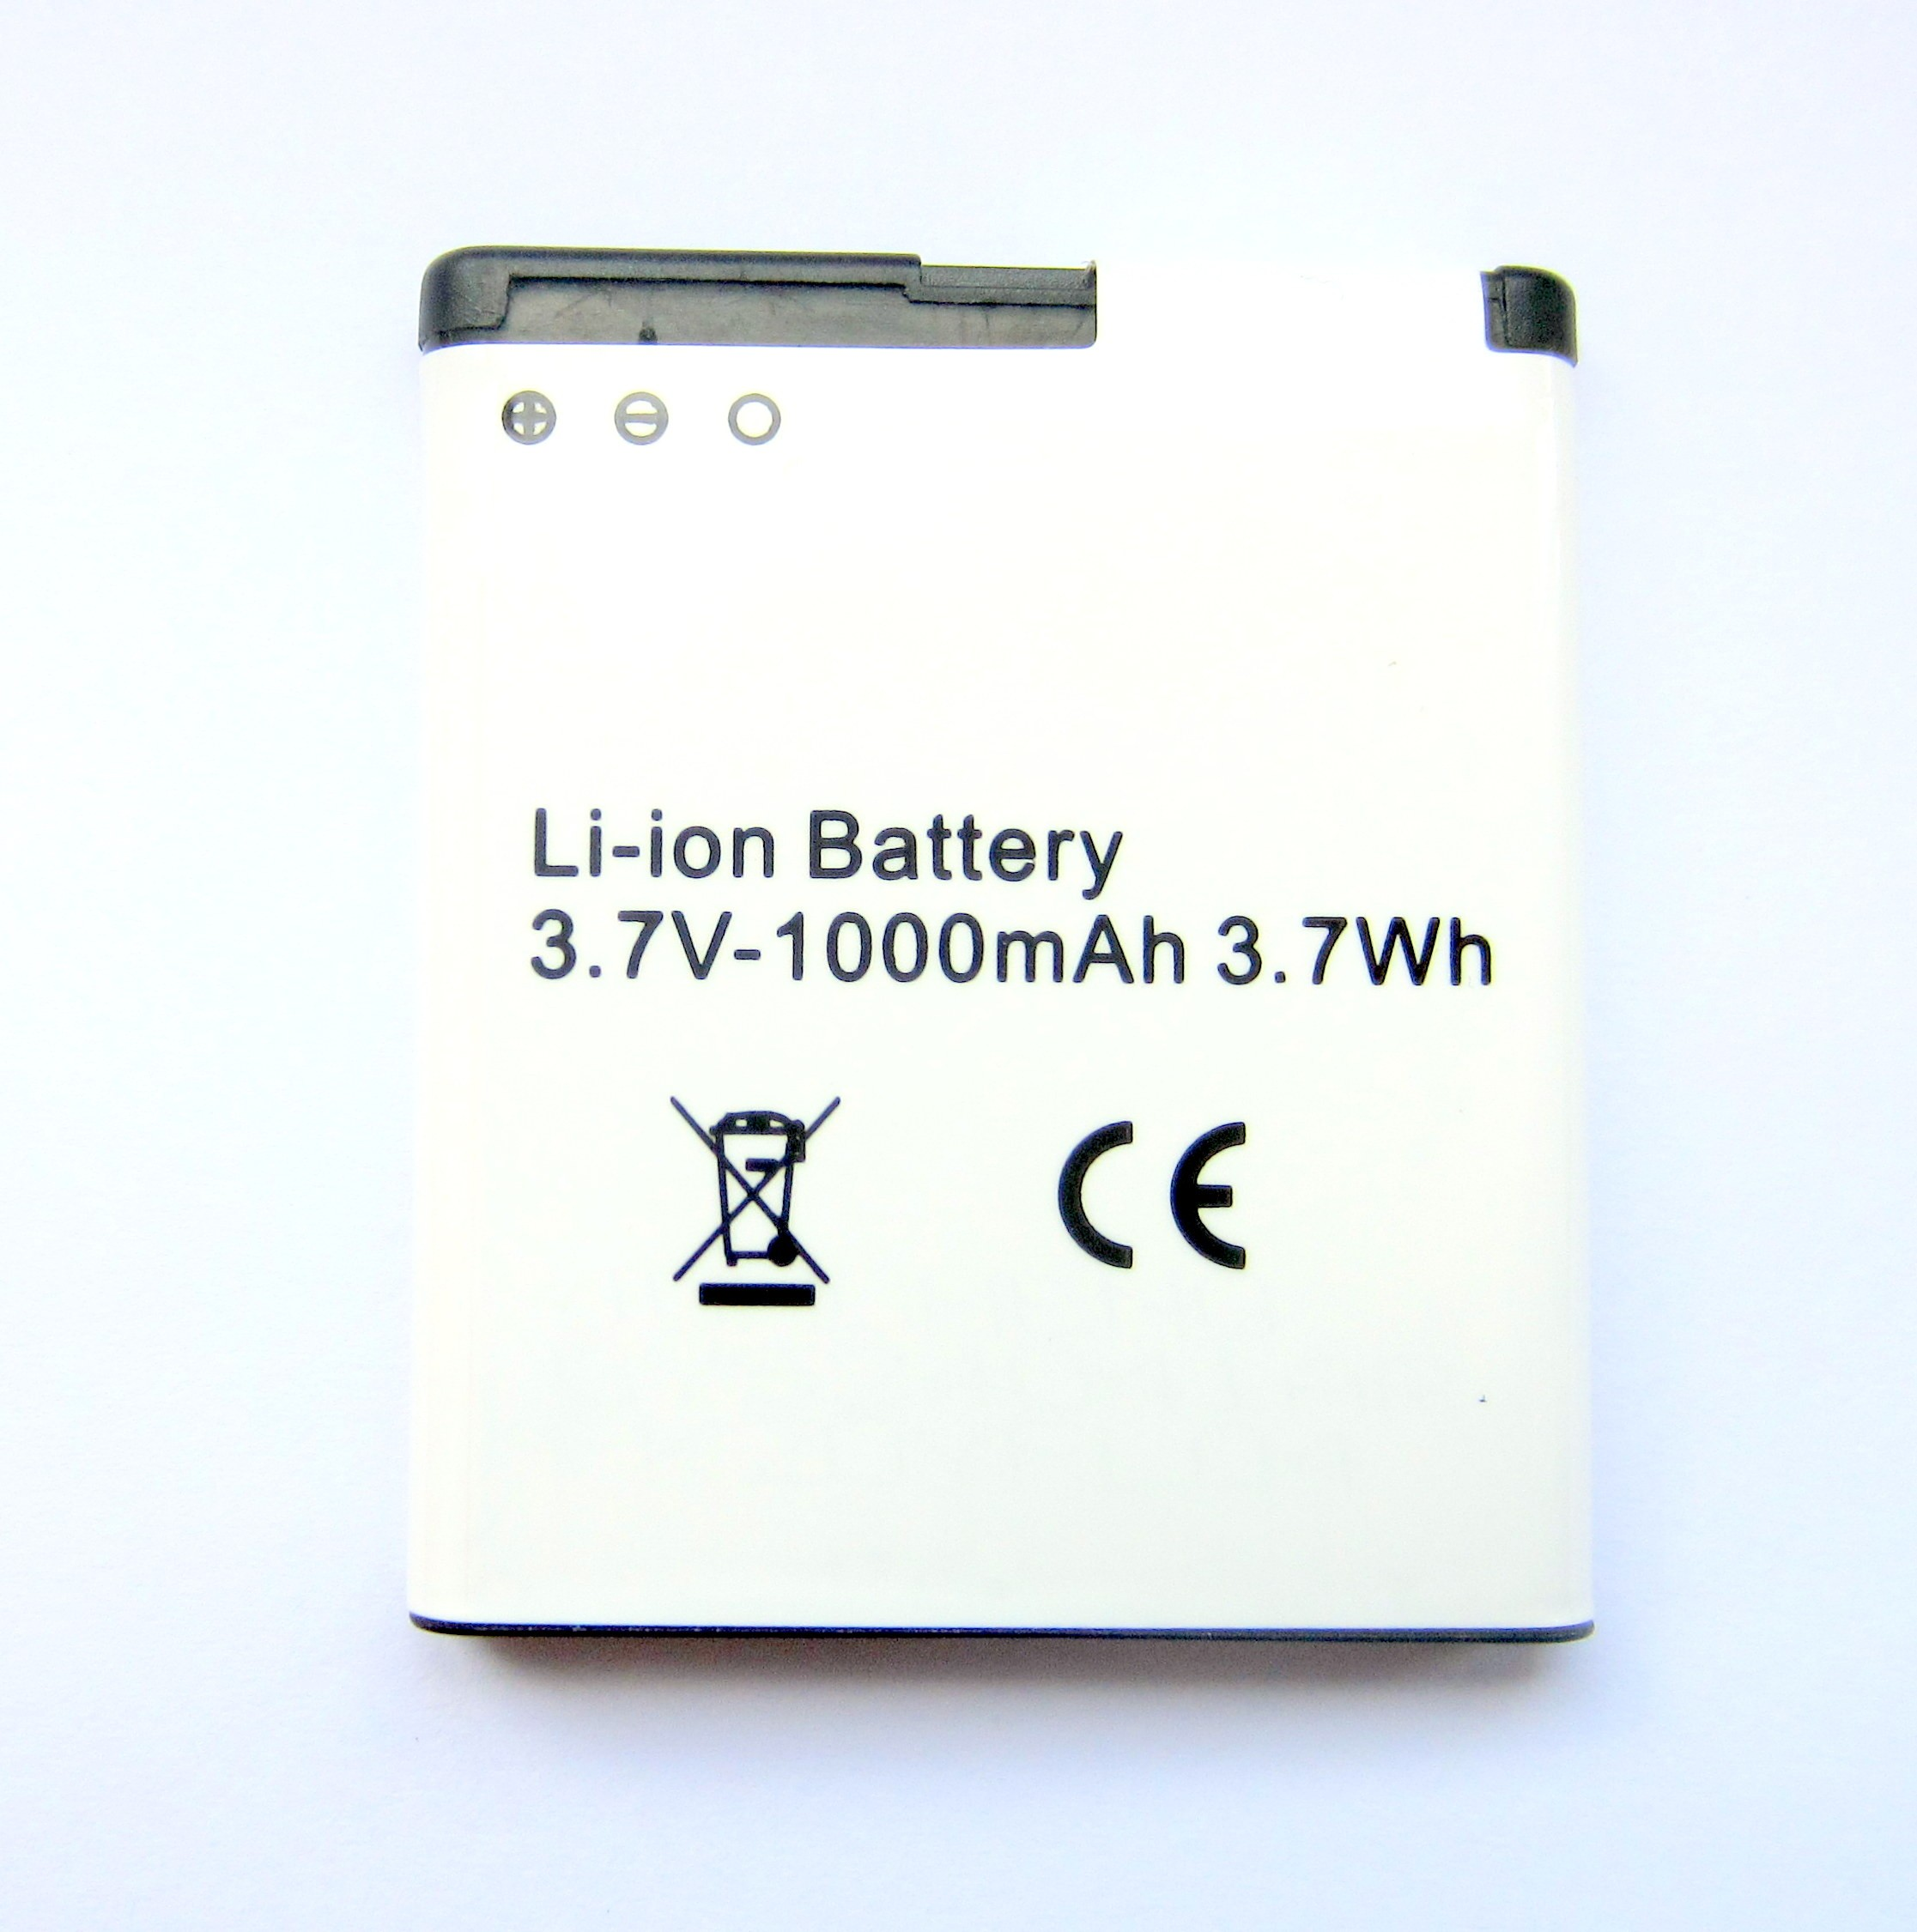 SPARE 3.7V GPS LI-ION BATTERY 1000mAh